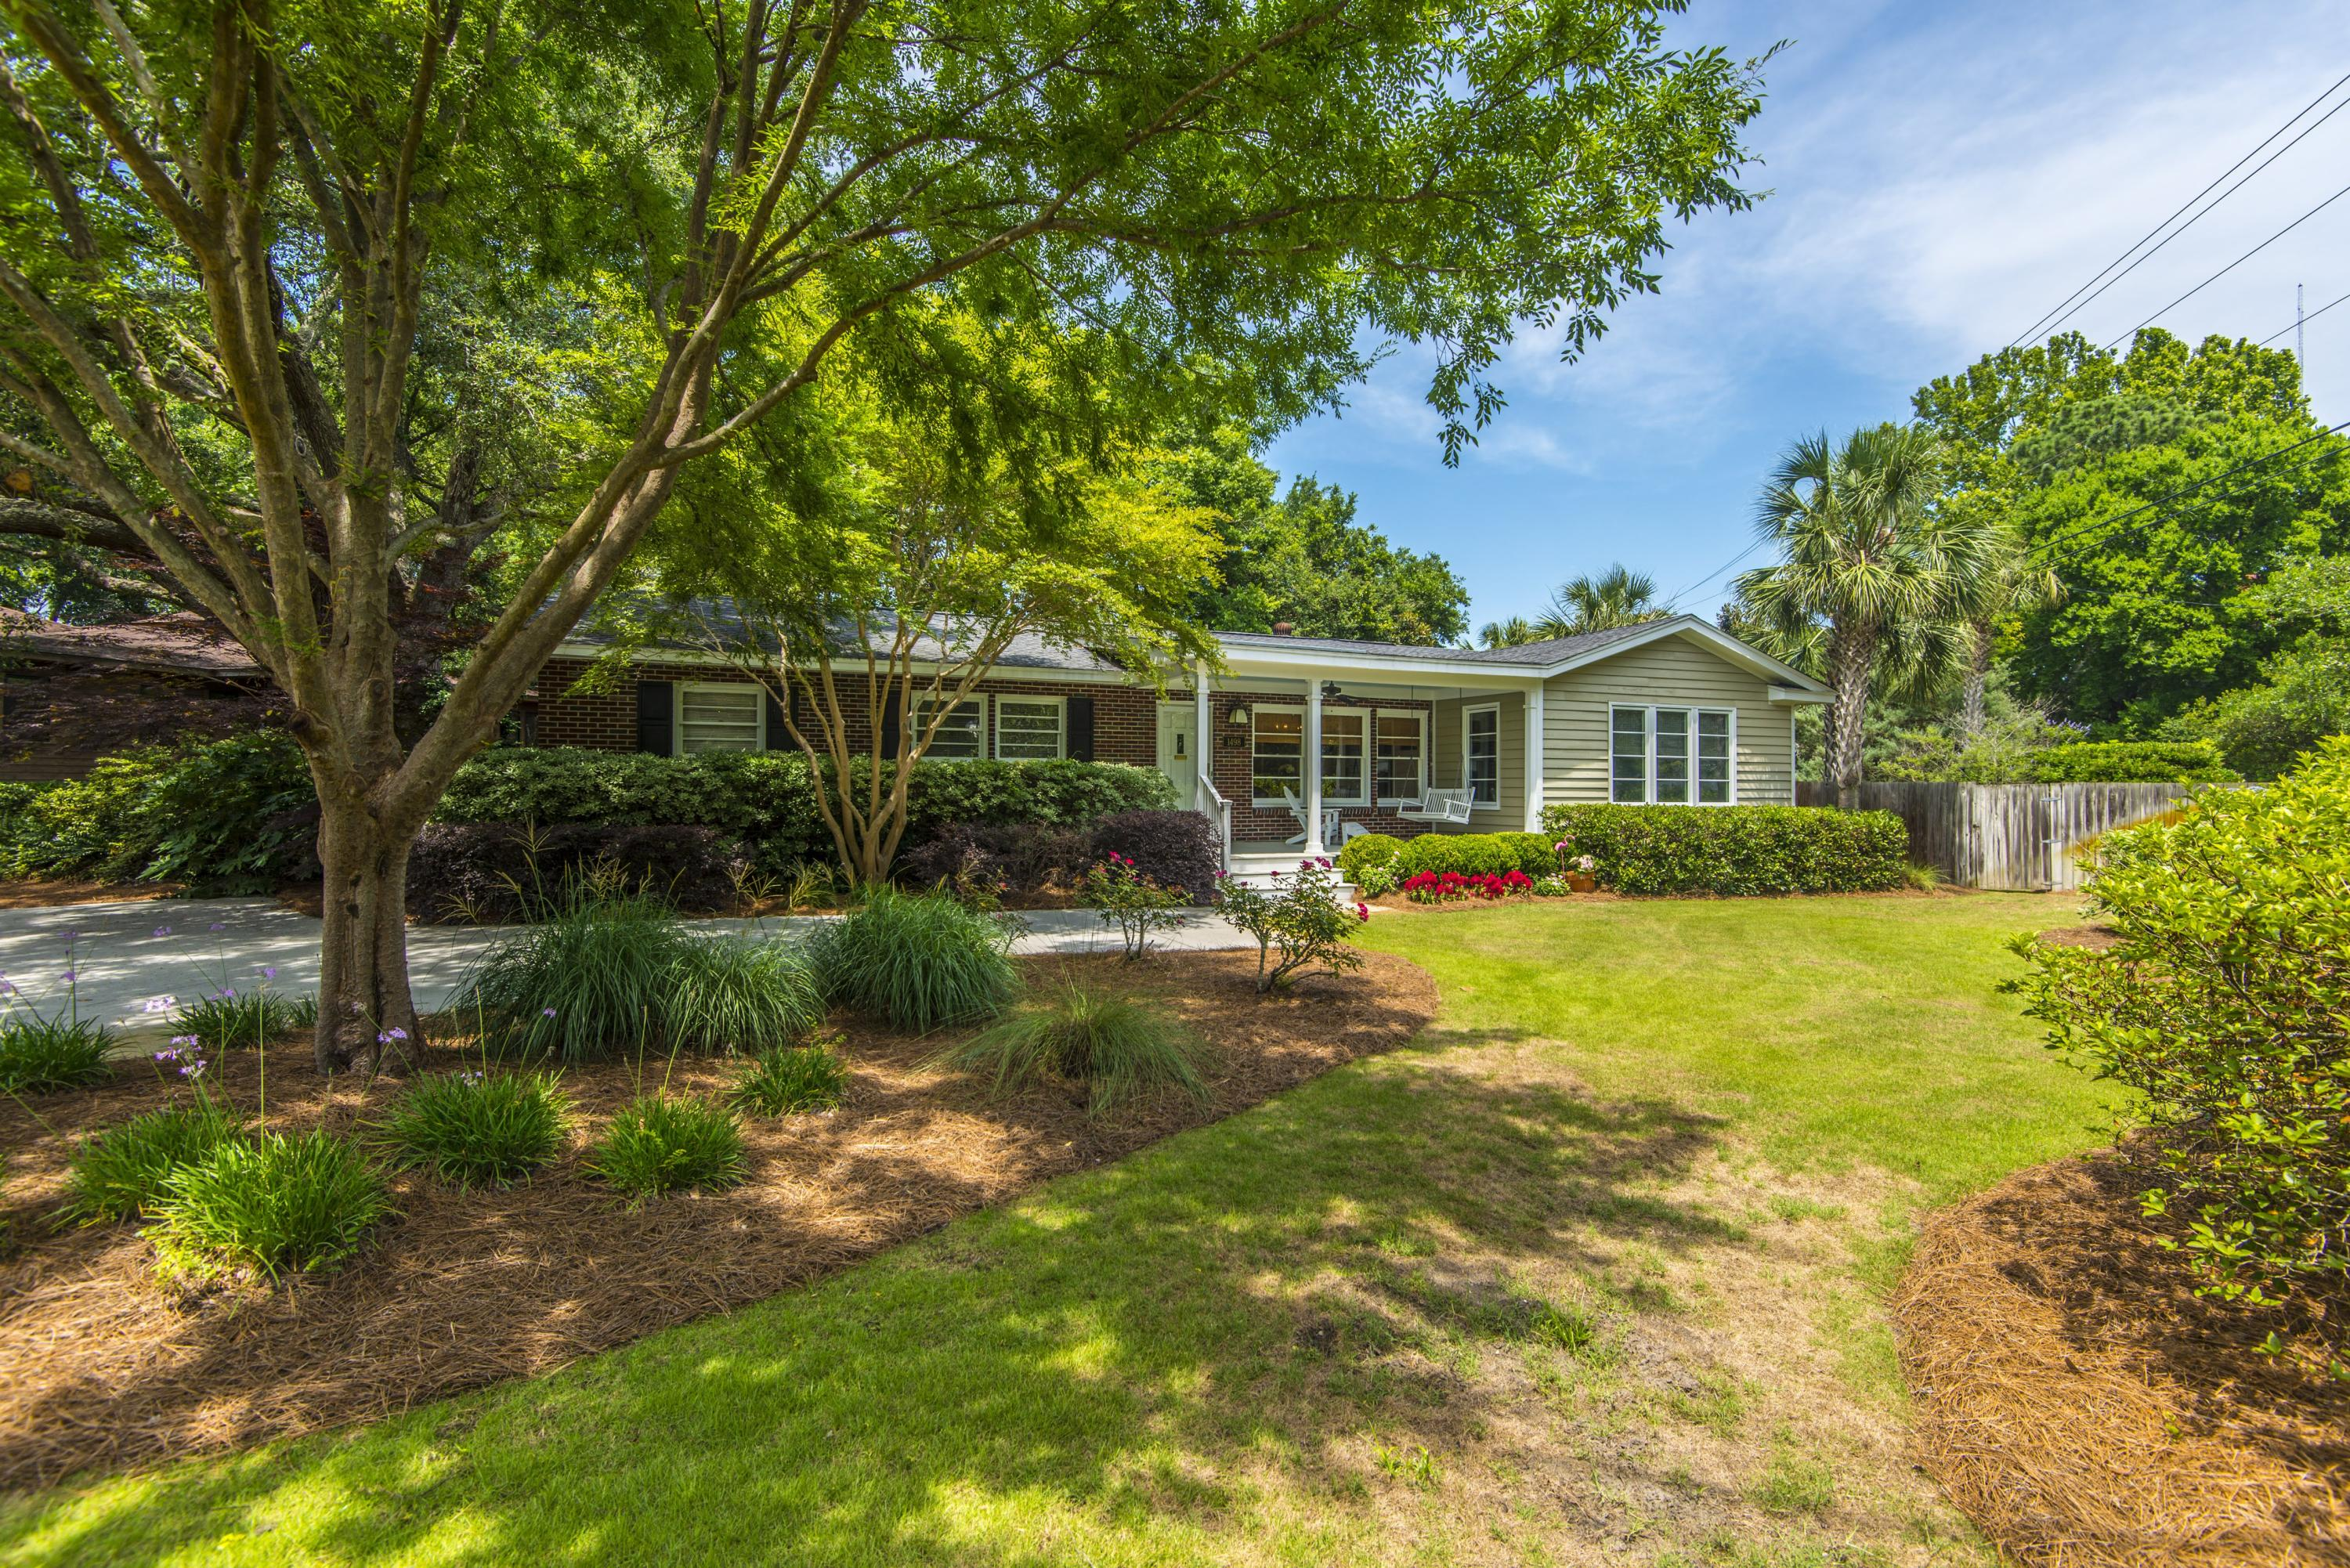 Old Mt Pleasant Homes For Sale - 1498 Pocahontas, Mount Pleasant, SC - 10